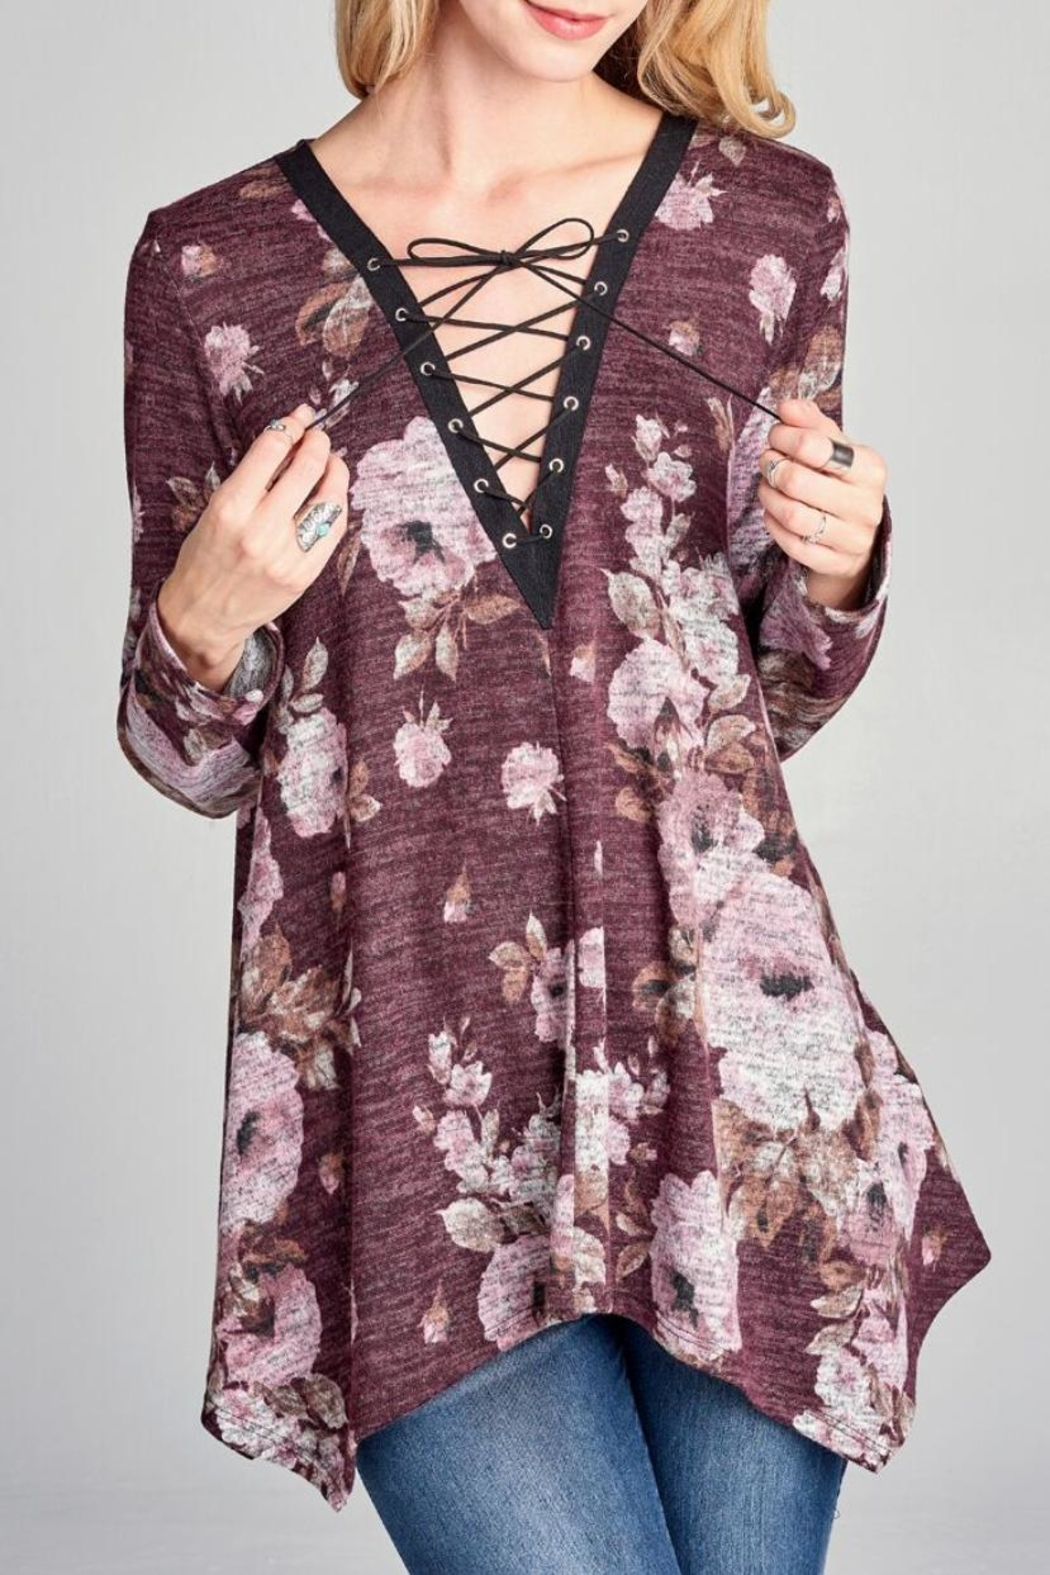 Oddi Floral Lace-Up Top - Main Image